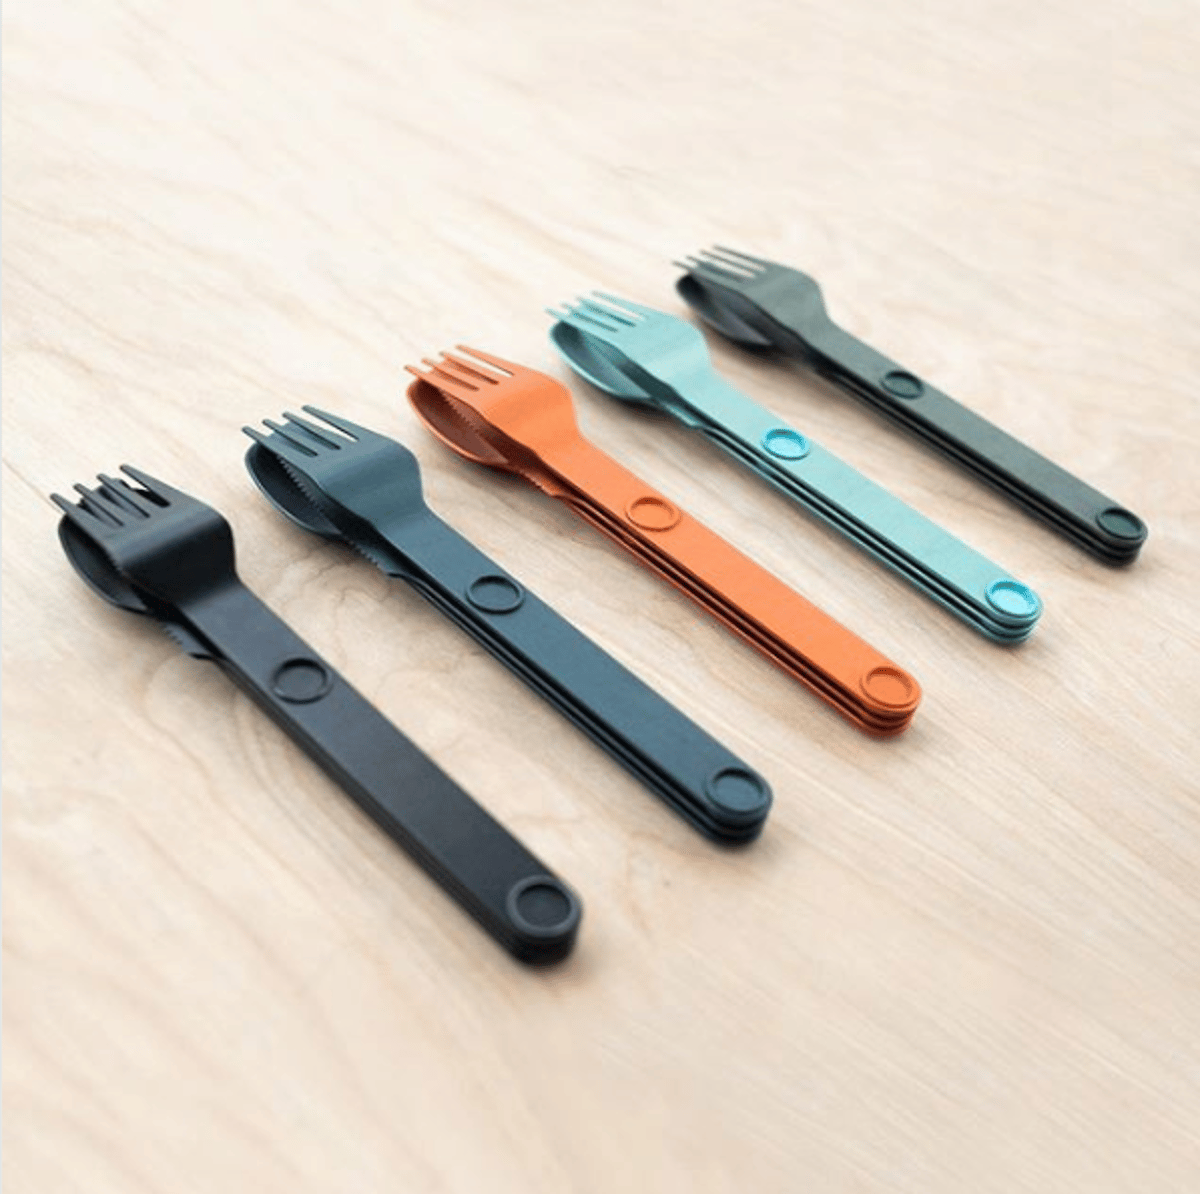 Full Windsor has turned to the Kickstarter crowd to get its Magware utensils into production